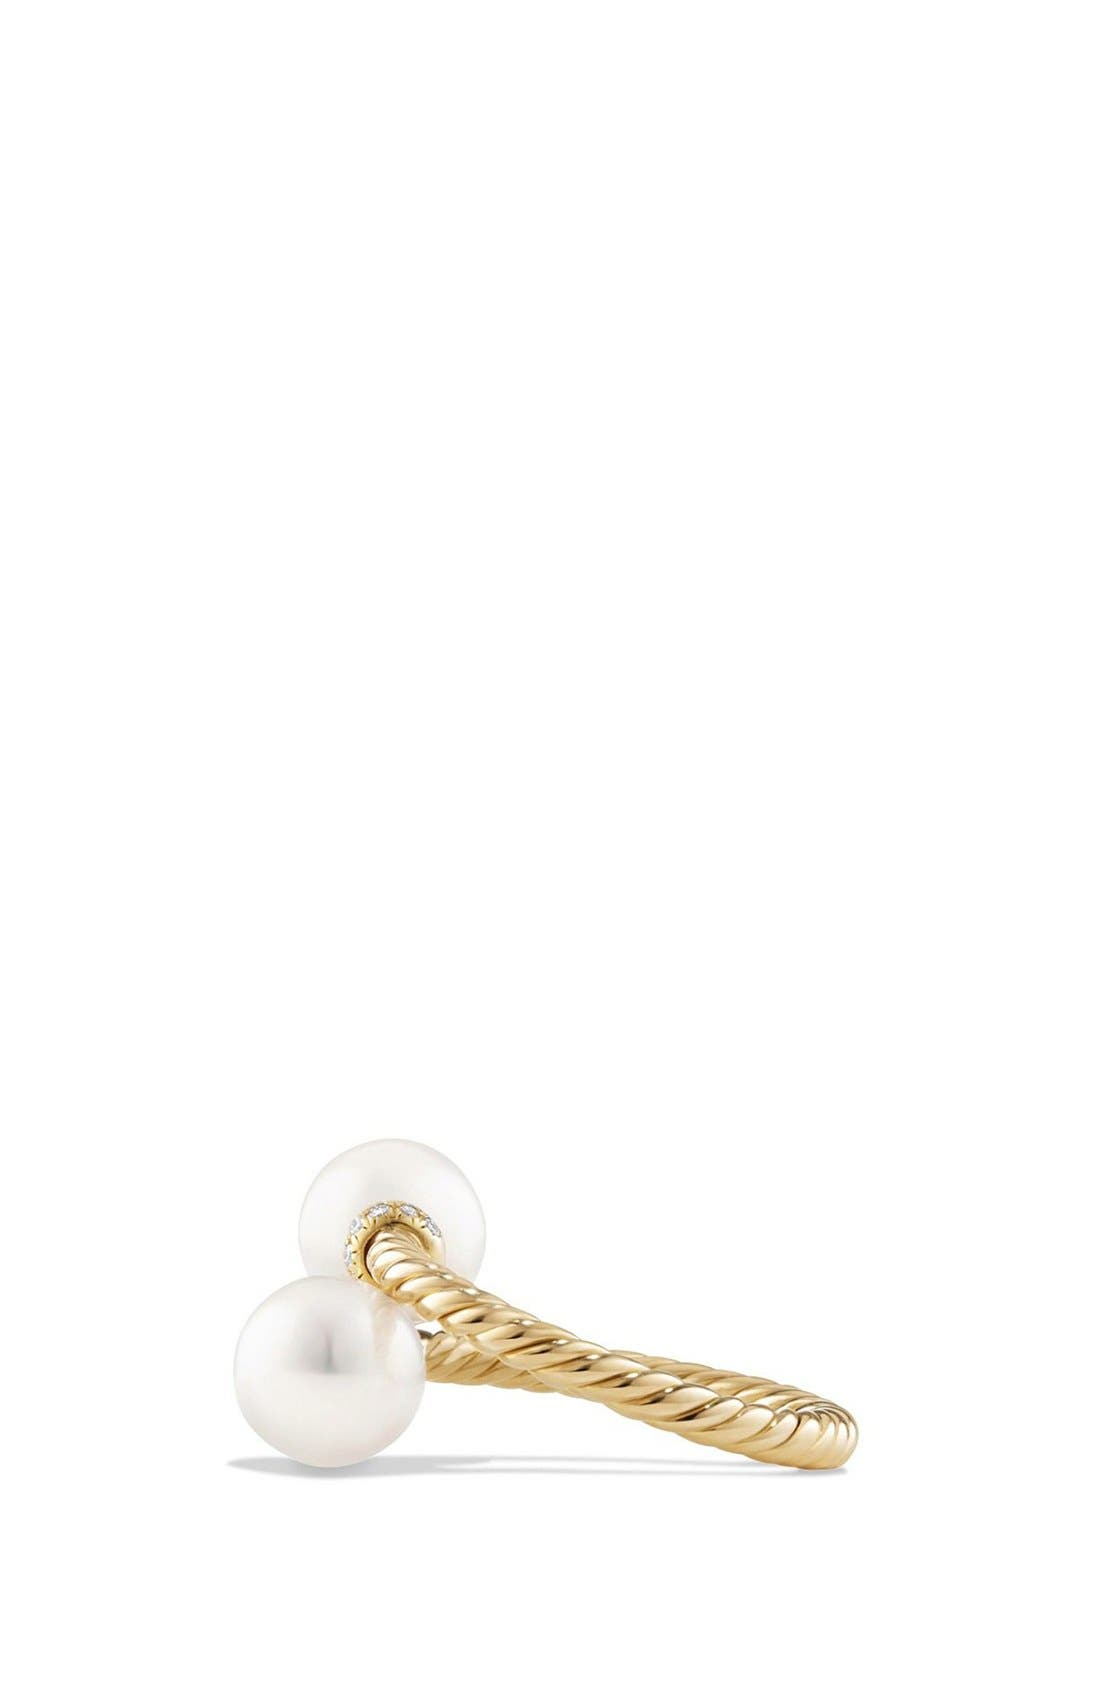 'Solari' Bead Ring with Diamonds and Pearls in 18K Gold,                             Alternate thumbnail 2, color,                             PEARL